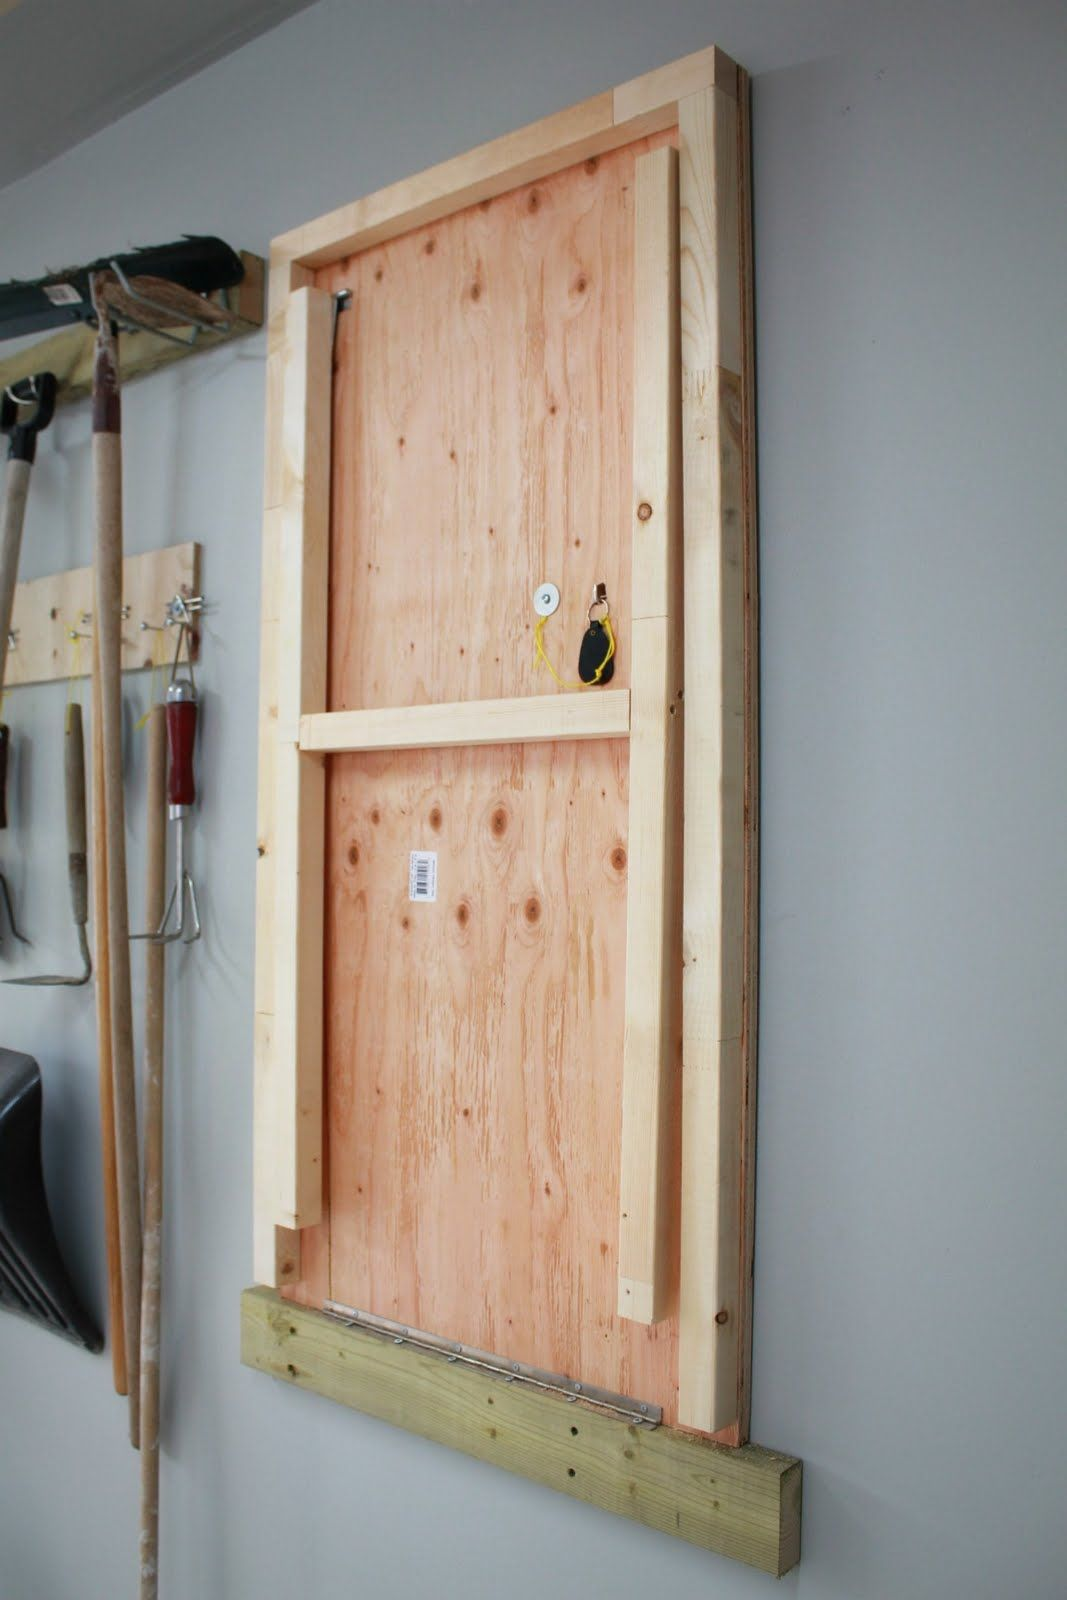 Diy How To Mount A Fold Up Work Table Great Pictures Show Secure Wall Perfect For The Garage Or Where You Re Short On E